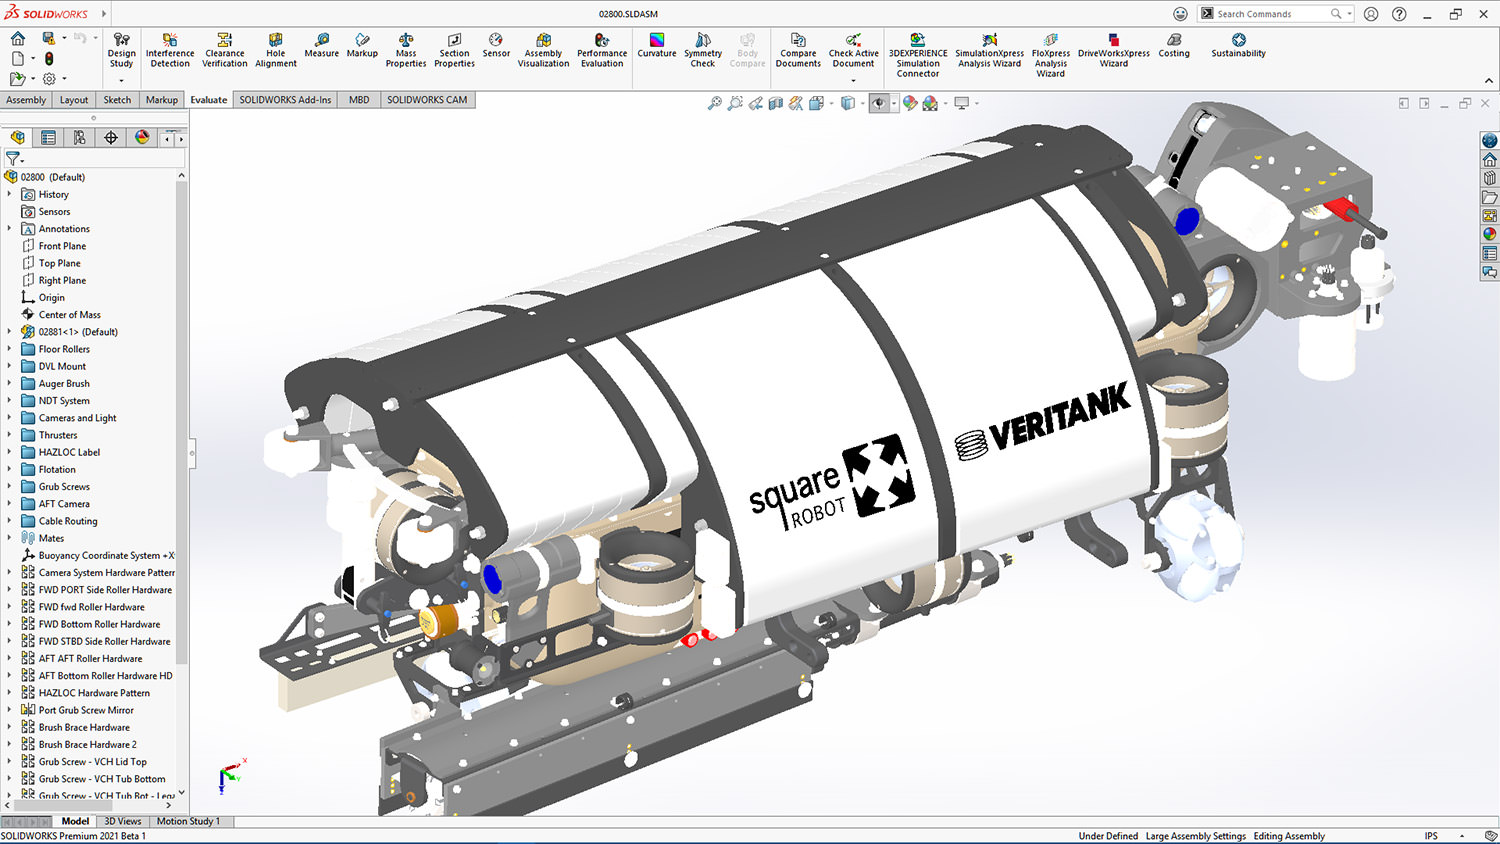 SolidWorks by Dassault Systemes